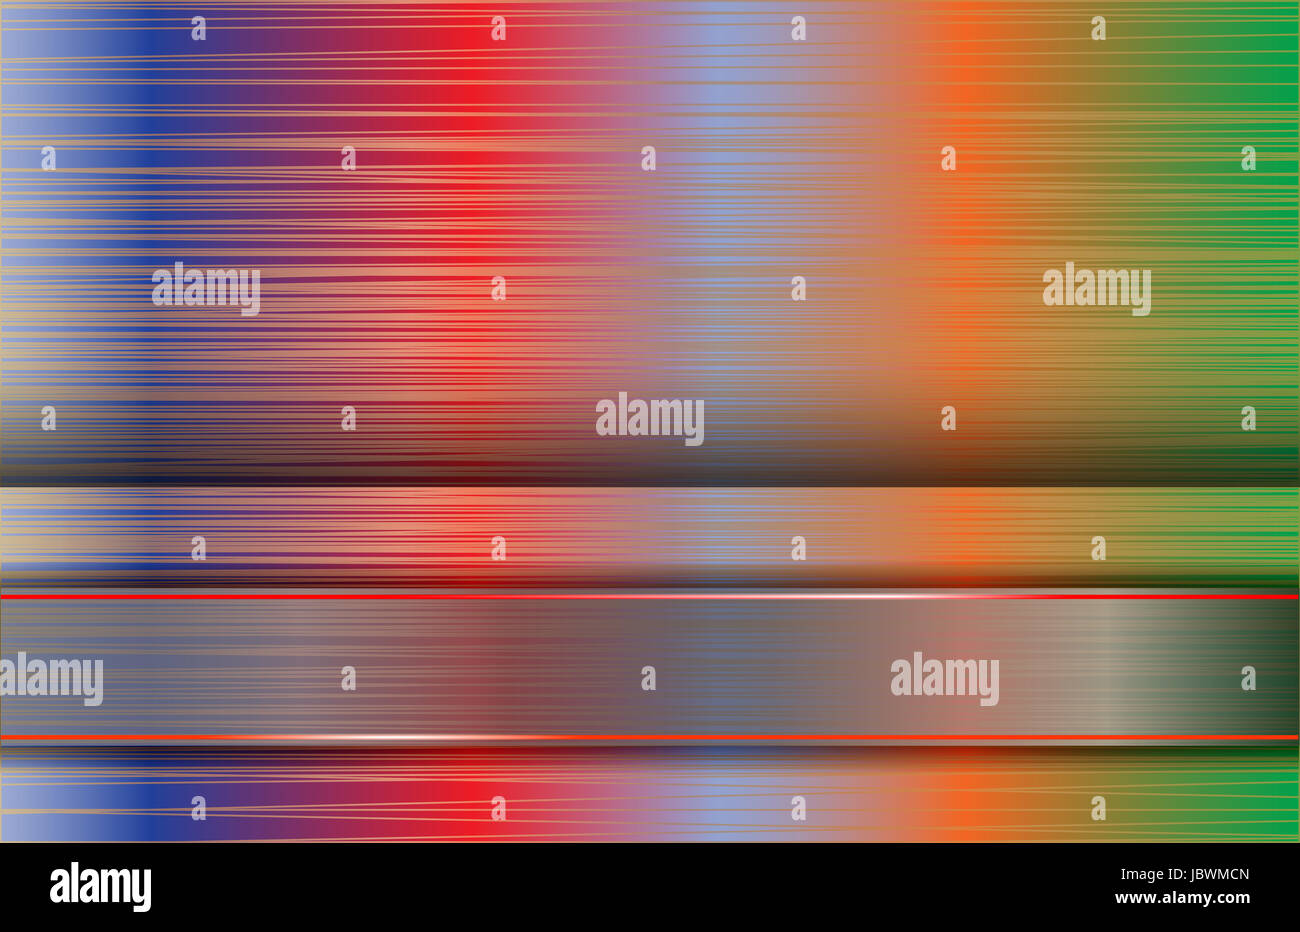 metallic backdrop - Stock Image